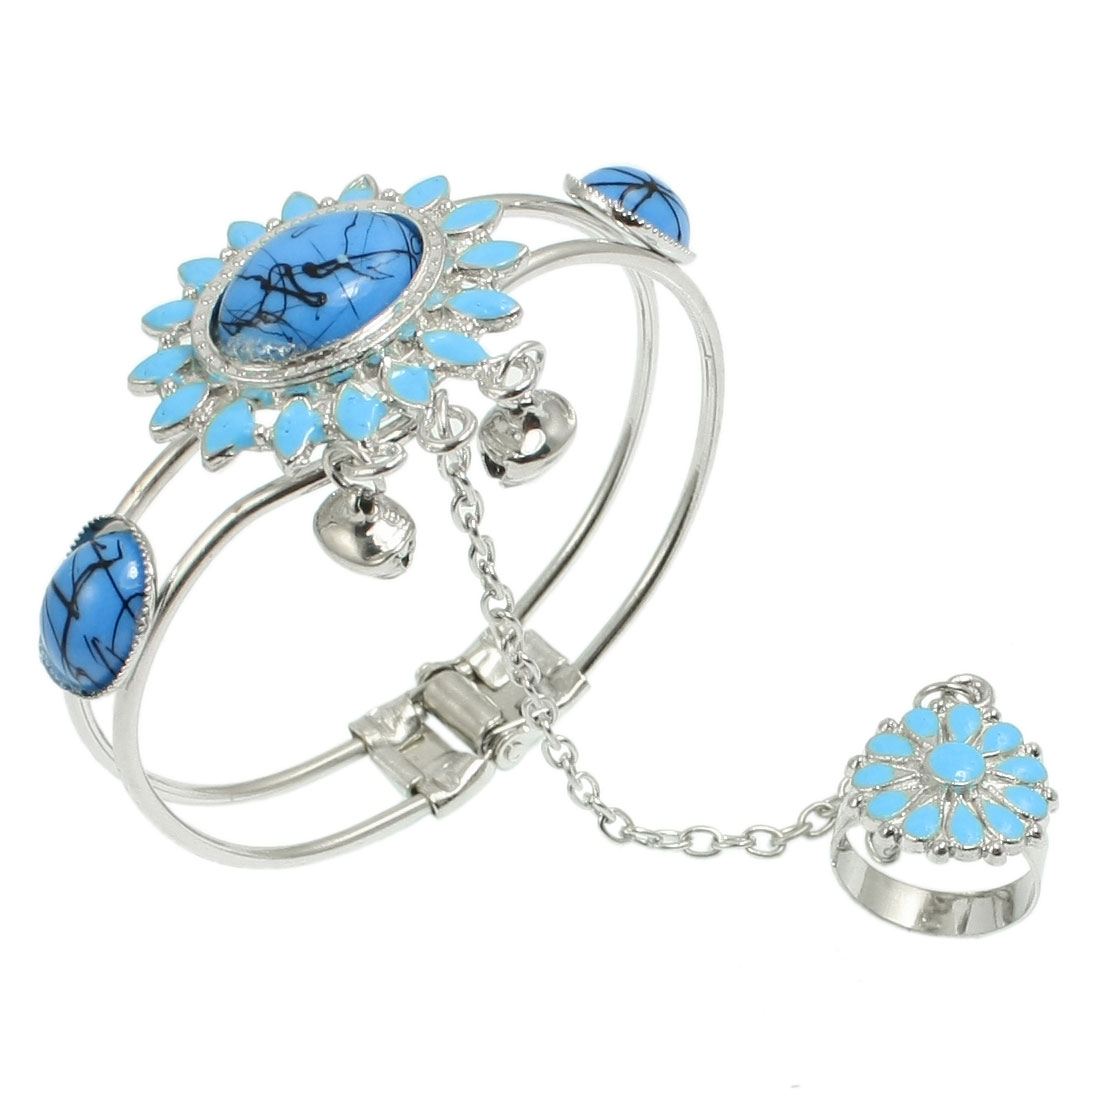 Lady Retro Style Elliptical Flower Bead Detailing Ring Bell Bracelet Bangle